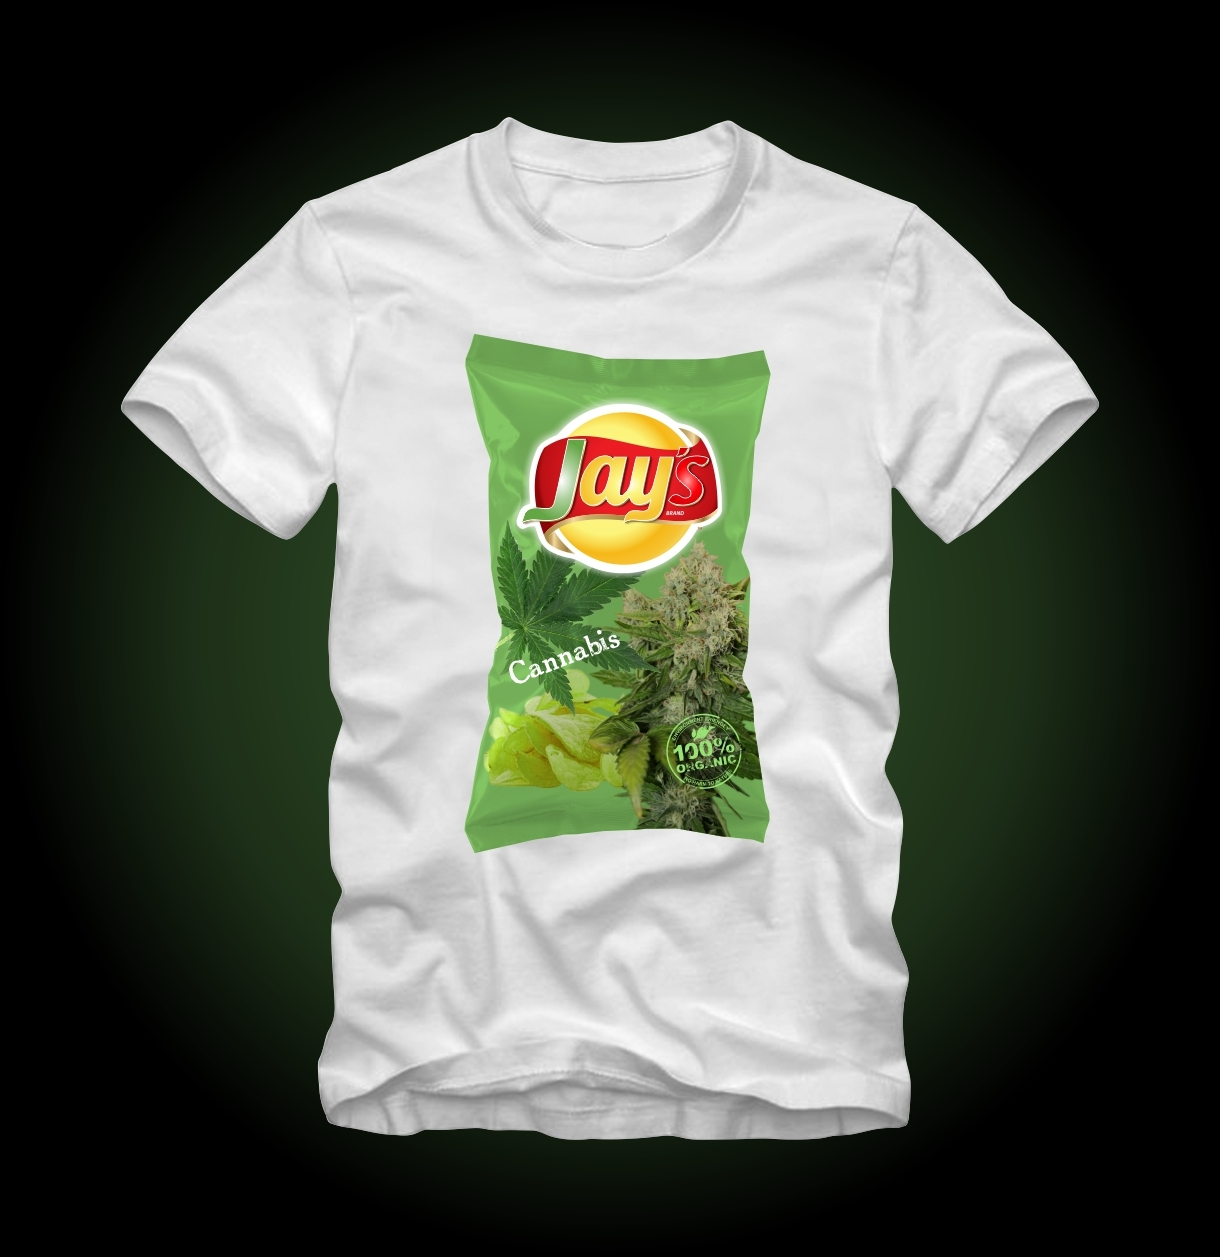 d51ecaf27 Cannabis 420 Weed Chips White T-Shirt by and 50 similar items. Jays weed  chips